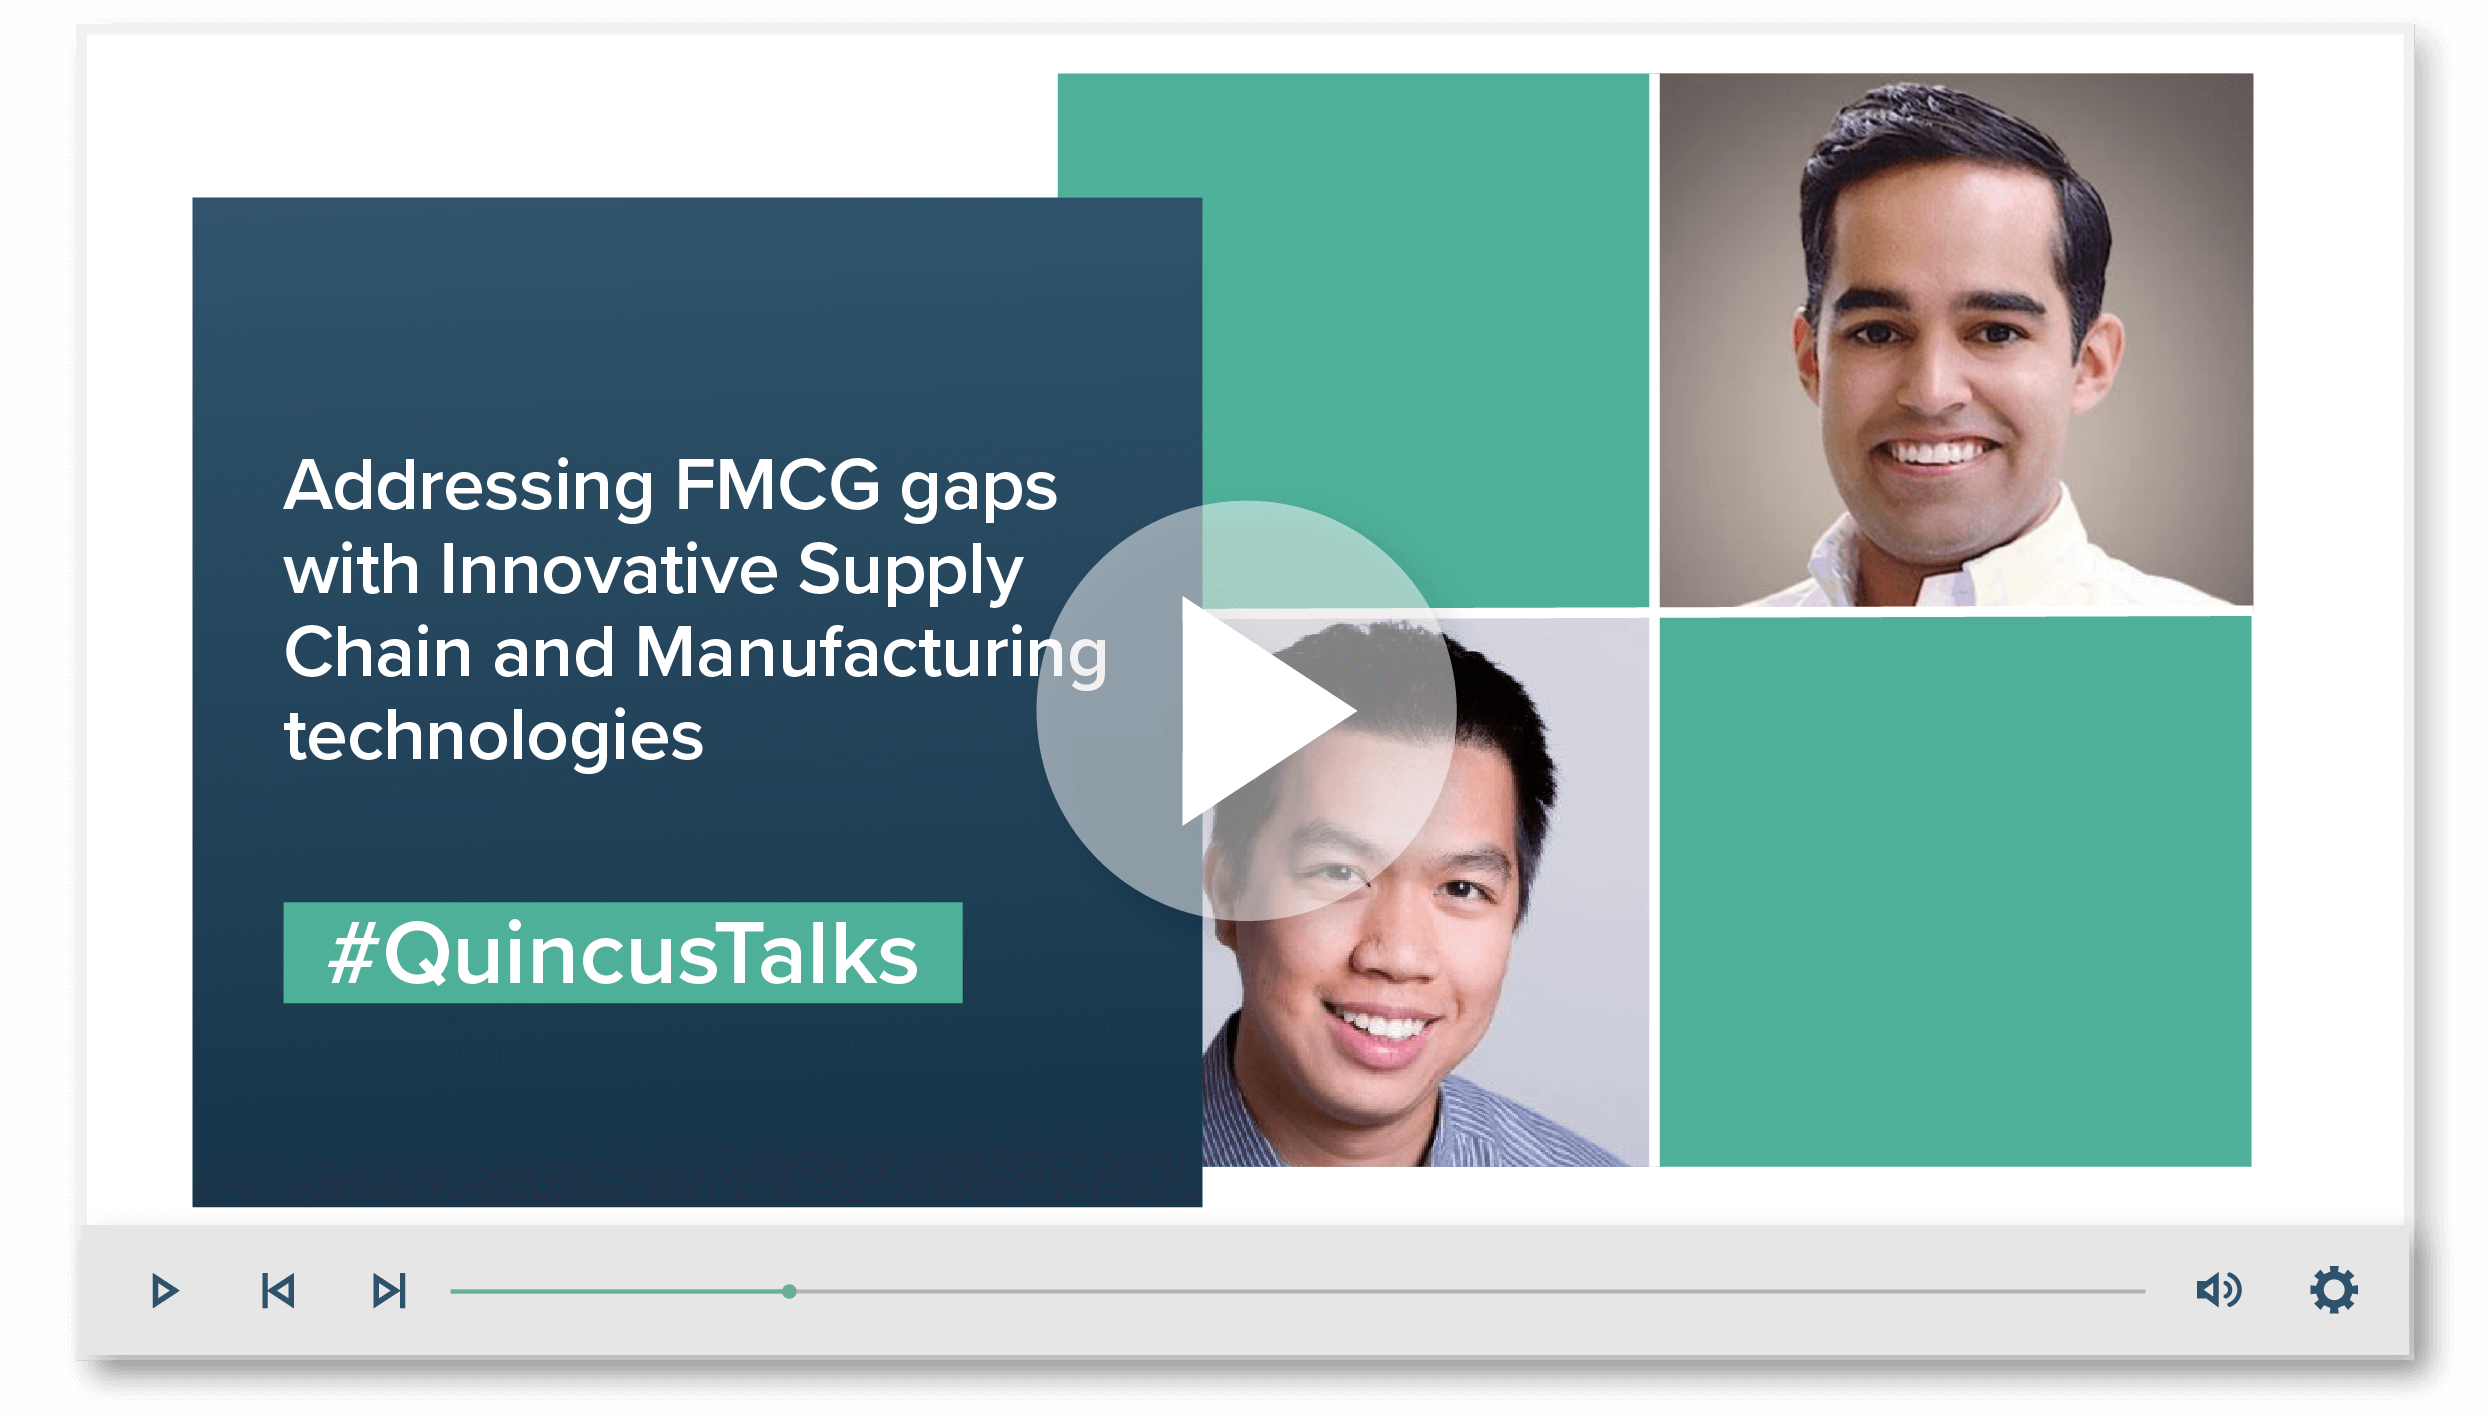 #1: Addressing FMCG gaps with Innovative Supply Chain and Manufacturing Technologies